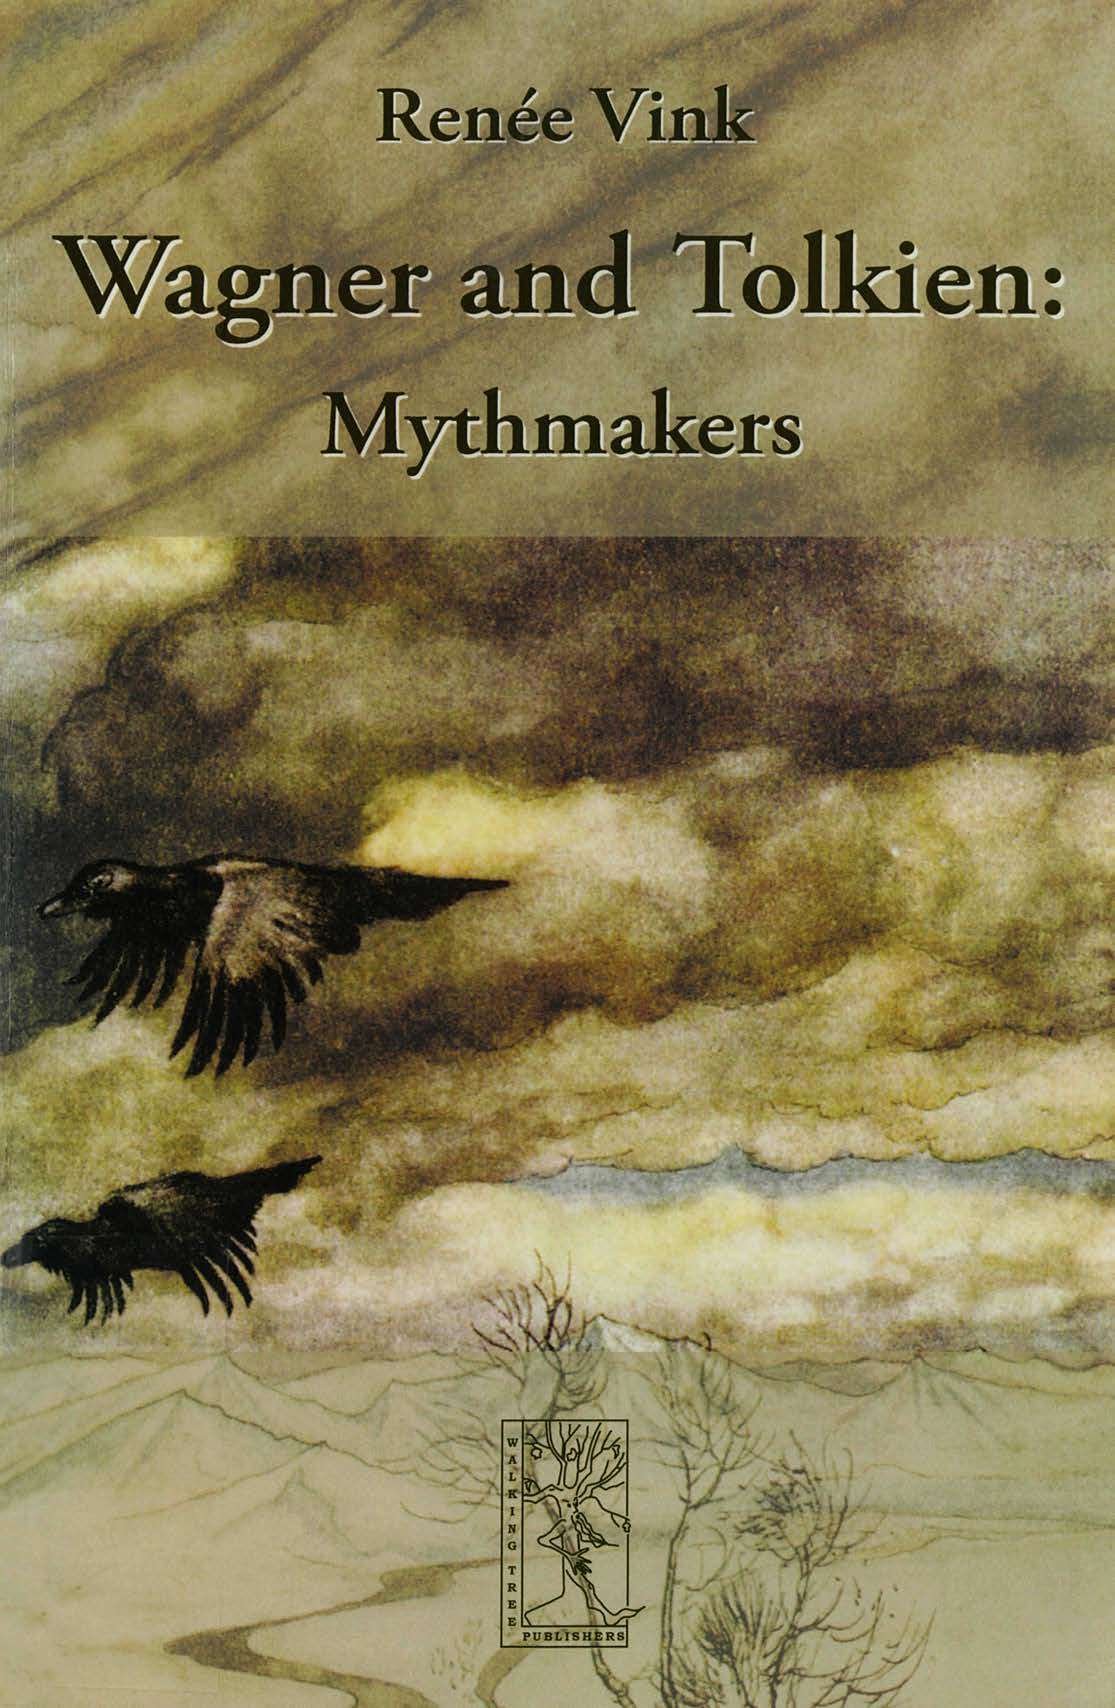 Wagner and Tolkien - Mythmakers (Cormarë Series #25)